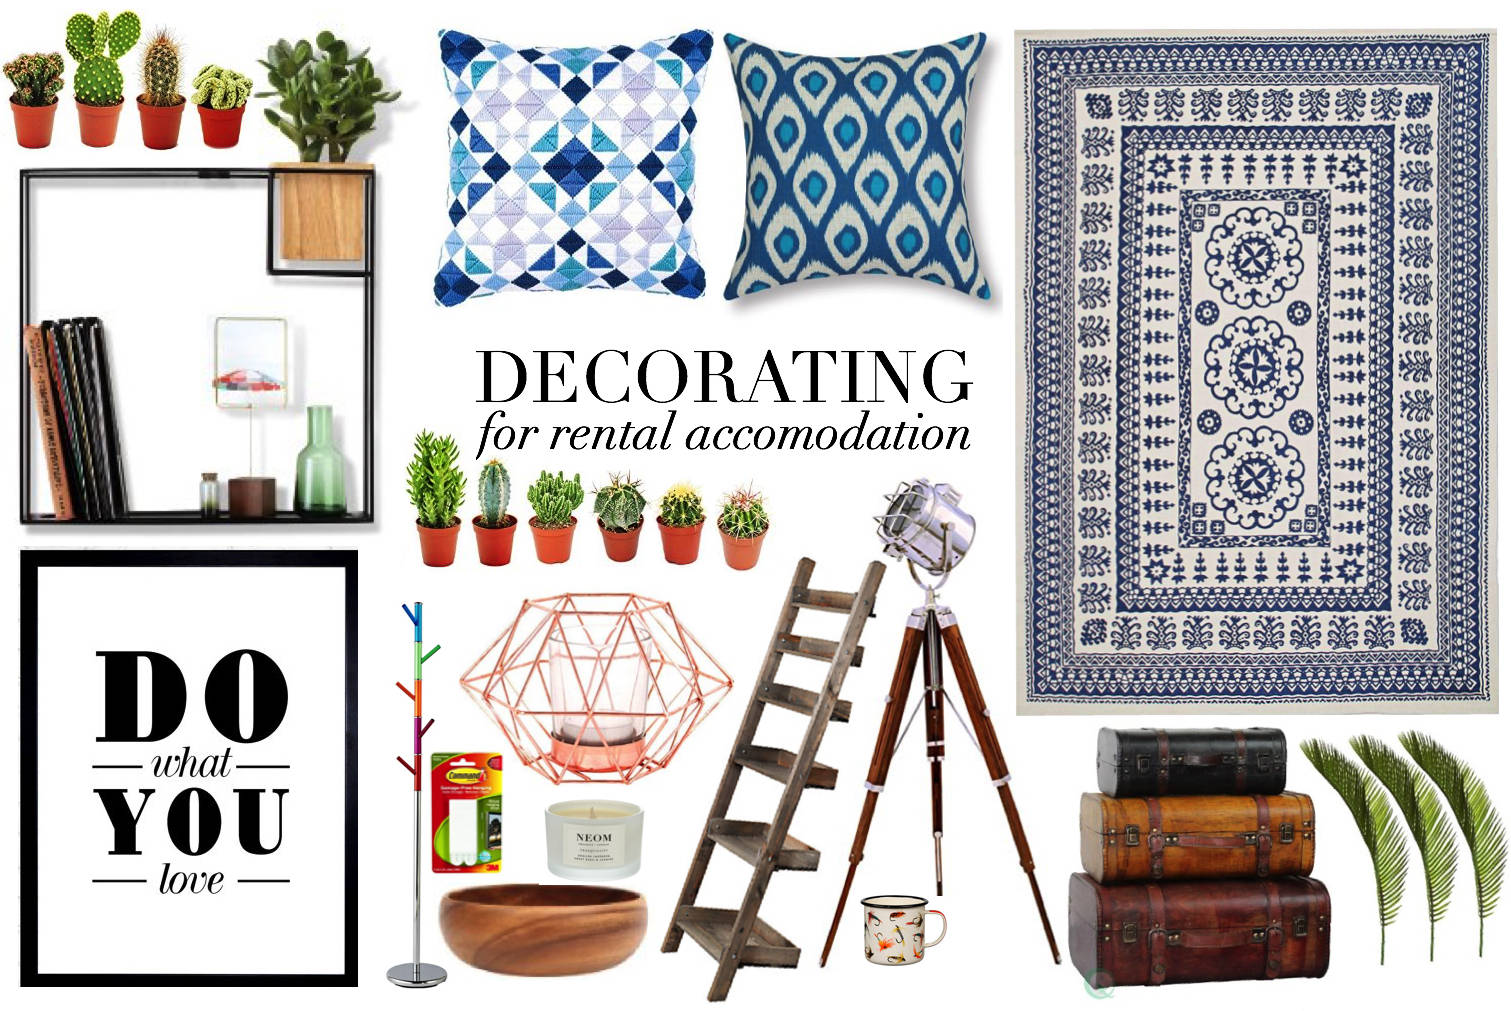 top tips for Decorating rental accomodation